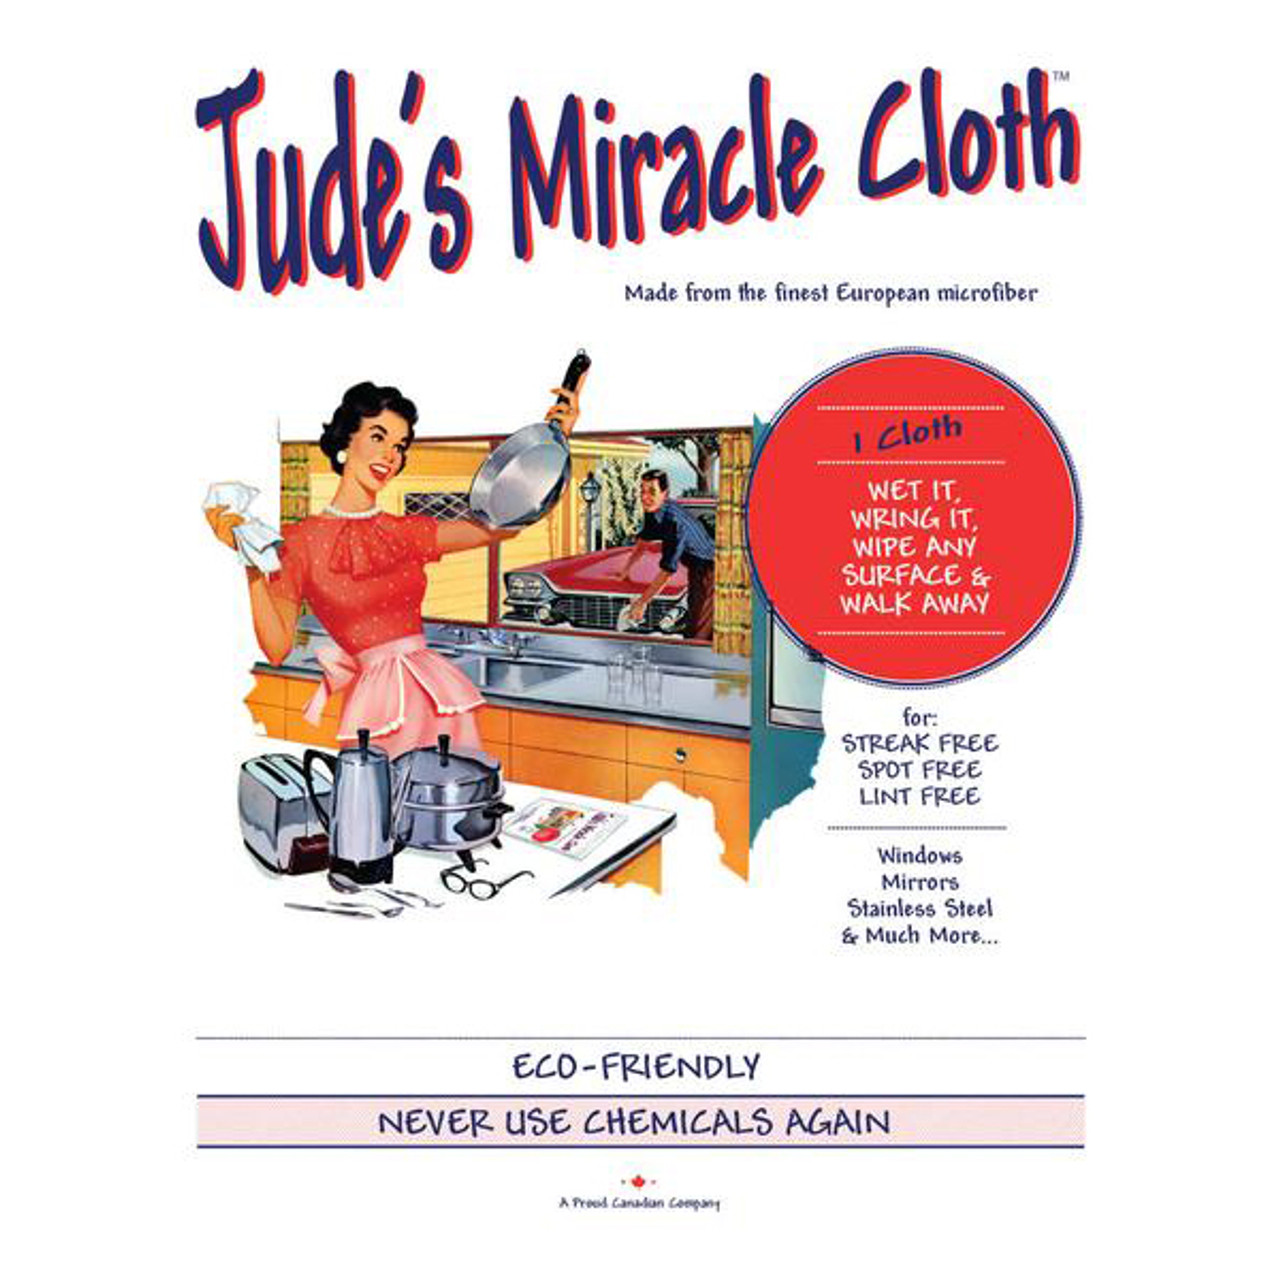 JUDE'S MIRACLE CLOTH - SINGLE